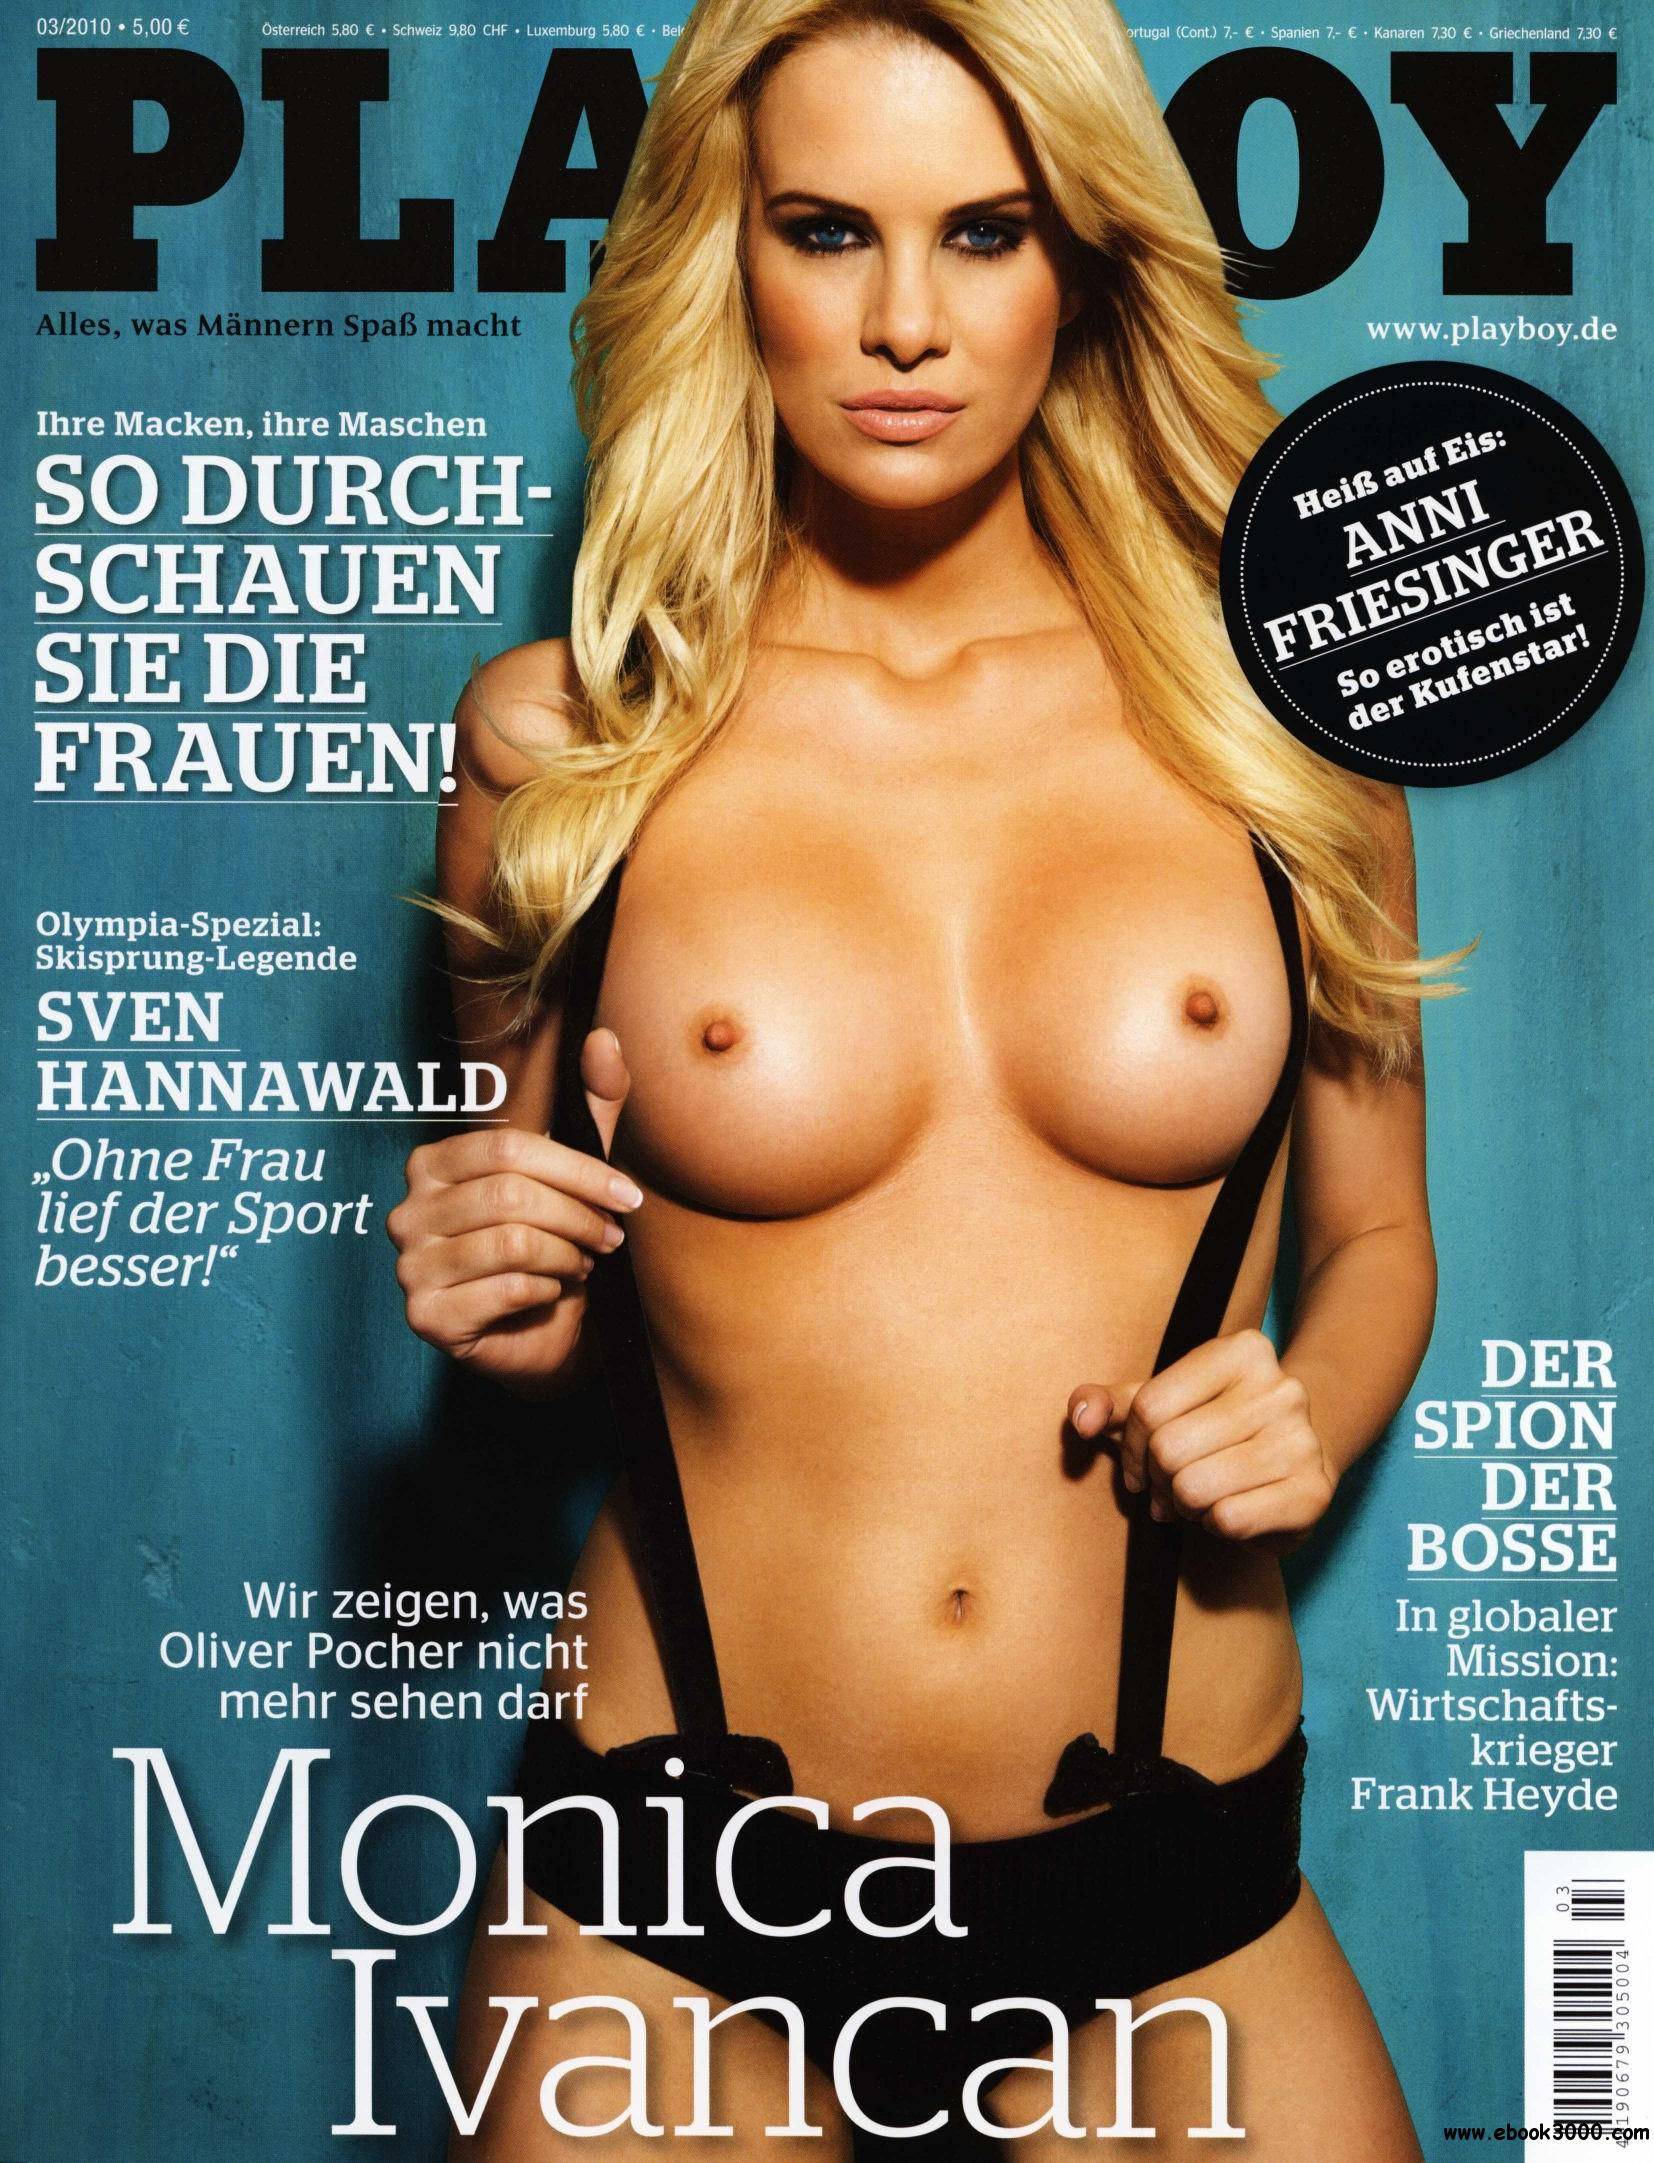 Playboy Germany - March 2010 free download